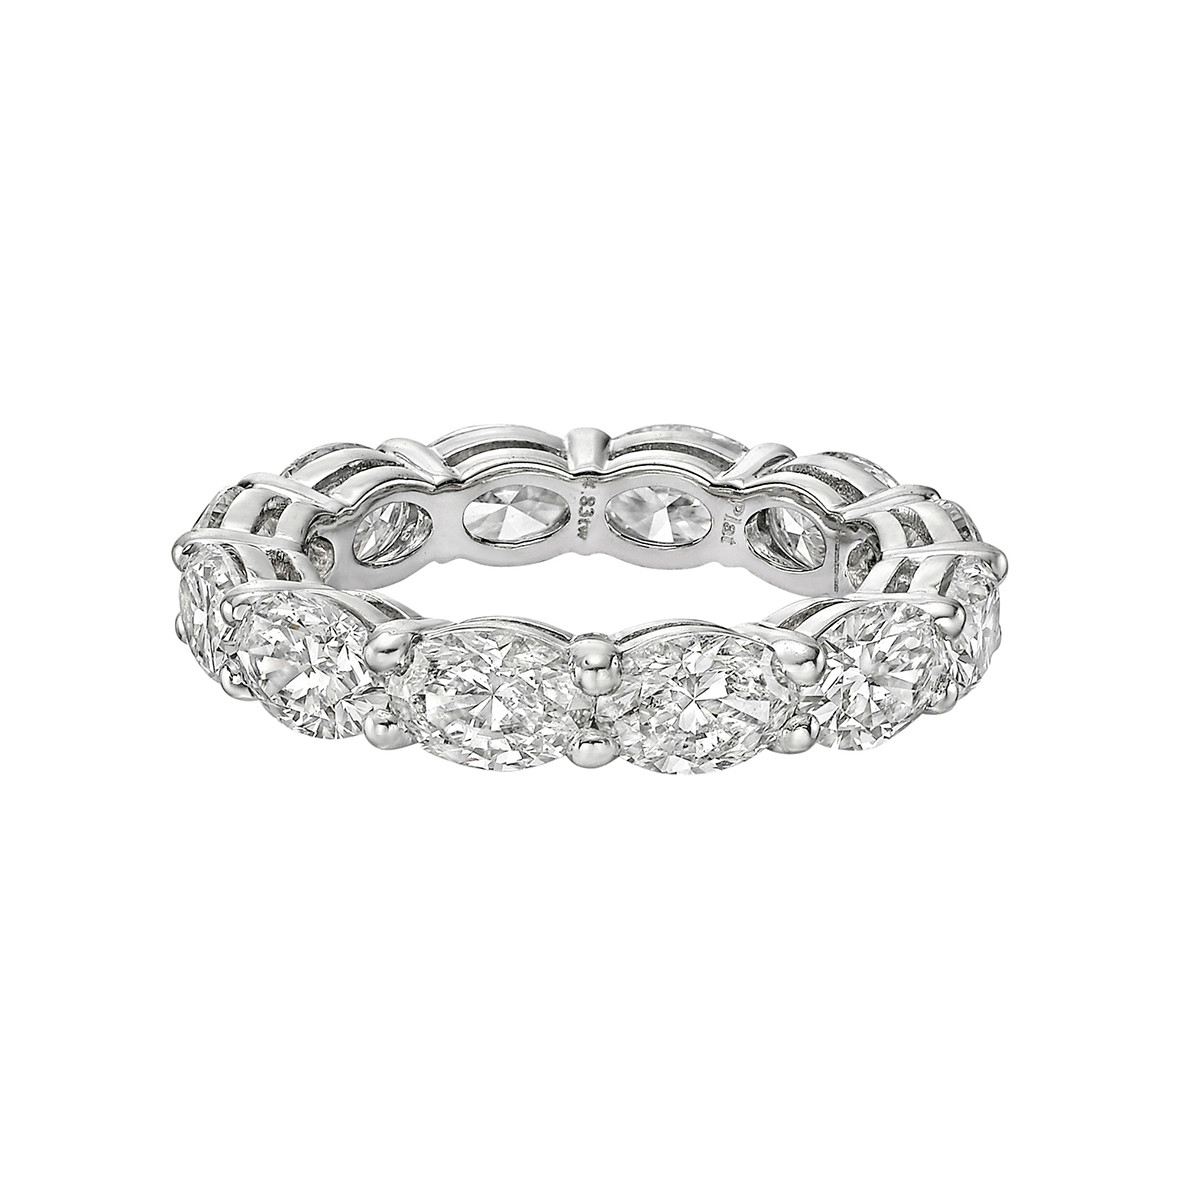 Oval Cut Diamond East West Eternity Band | Betteridge Within Most Recent Prong Set Oval Shaped Diamond Wedding Bands (Gallery 13 of 25)